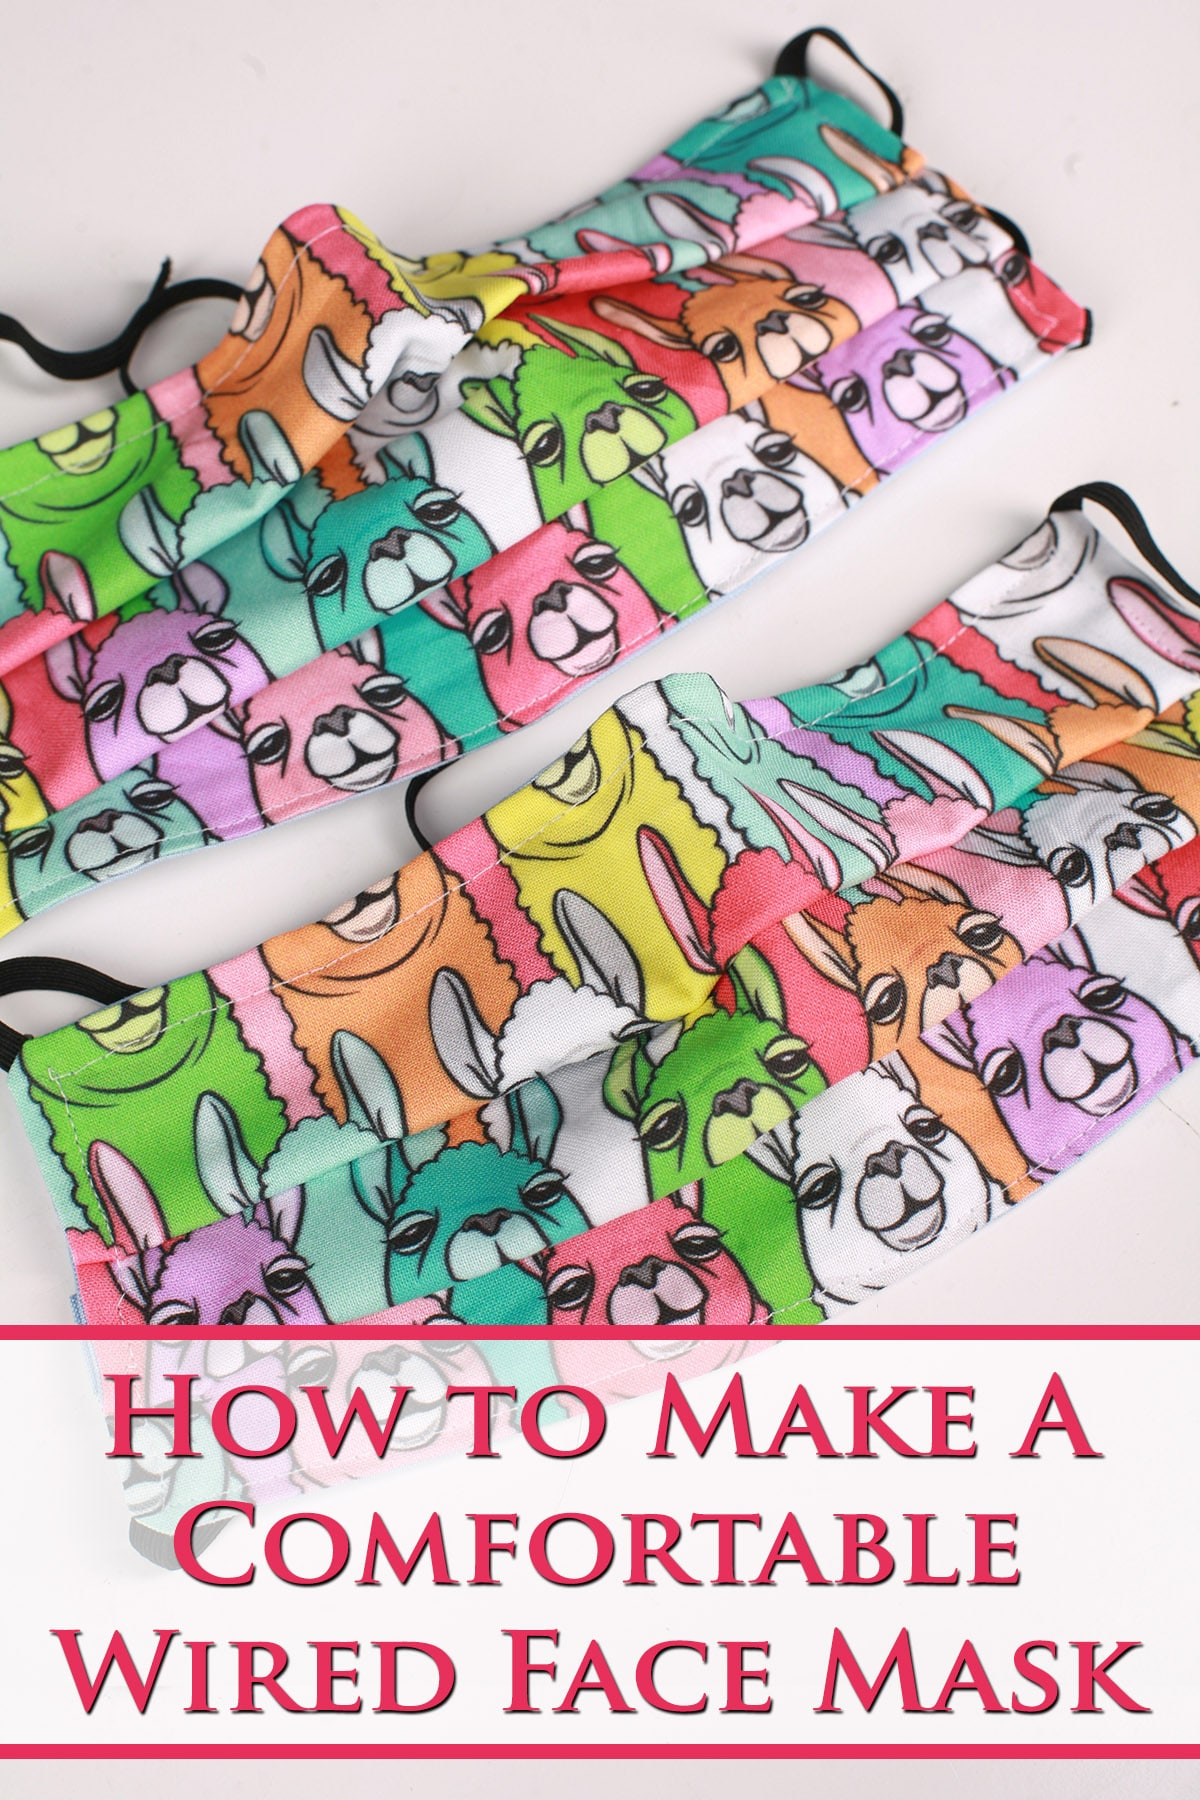 2 brightly coloured fabric face masks with a llamas design on them. Pink text says how to make a comfortable wired face mask.